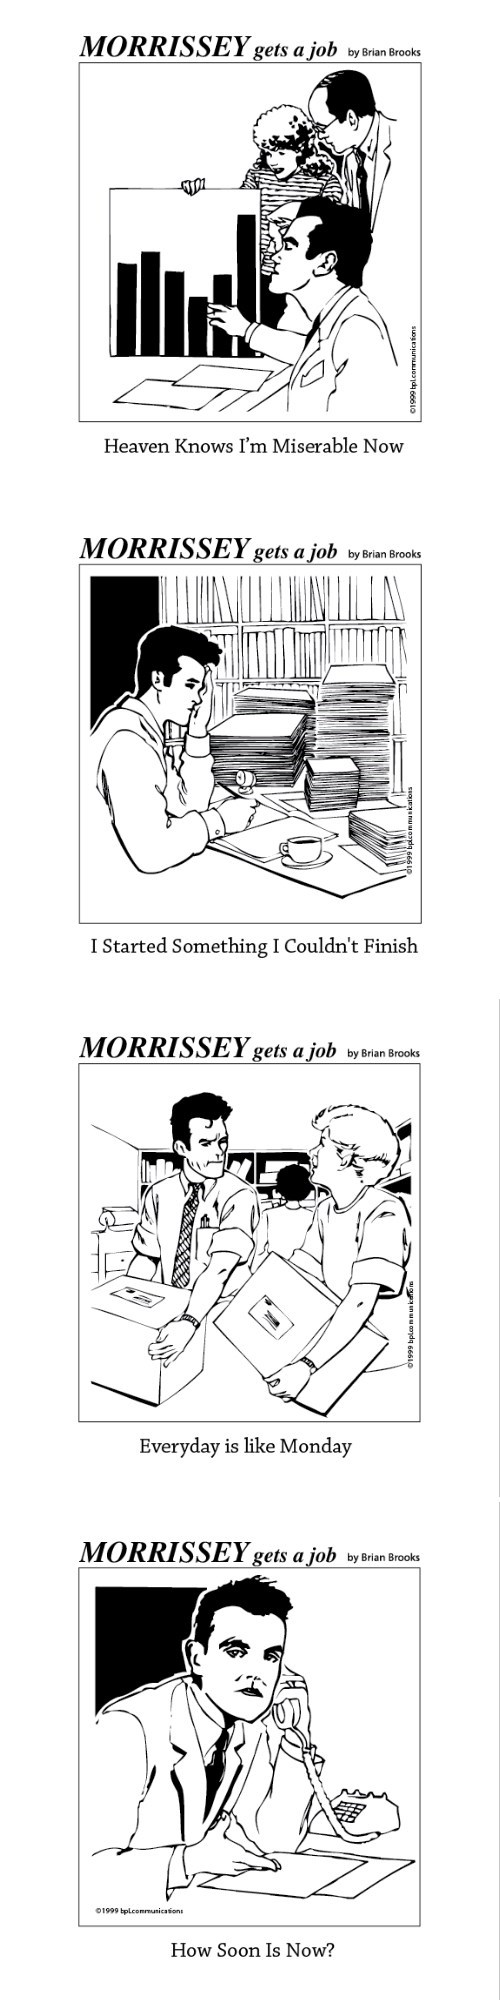 lyrics morrisey web comics existential monday thru friday Music g rated - 7836539392